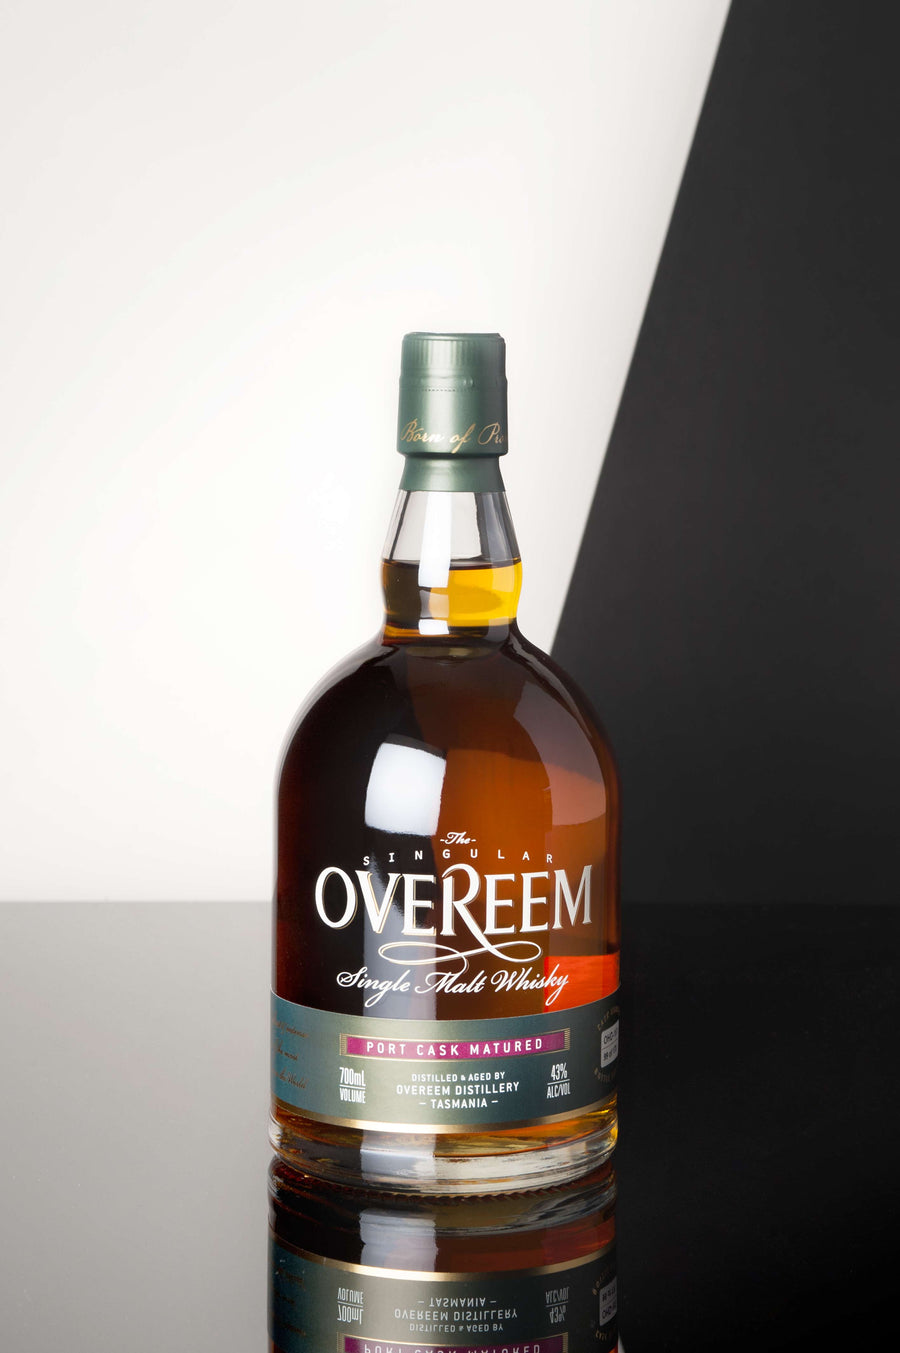 Overeem Port Matured Single Malt Whisky